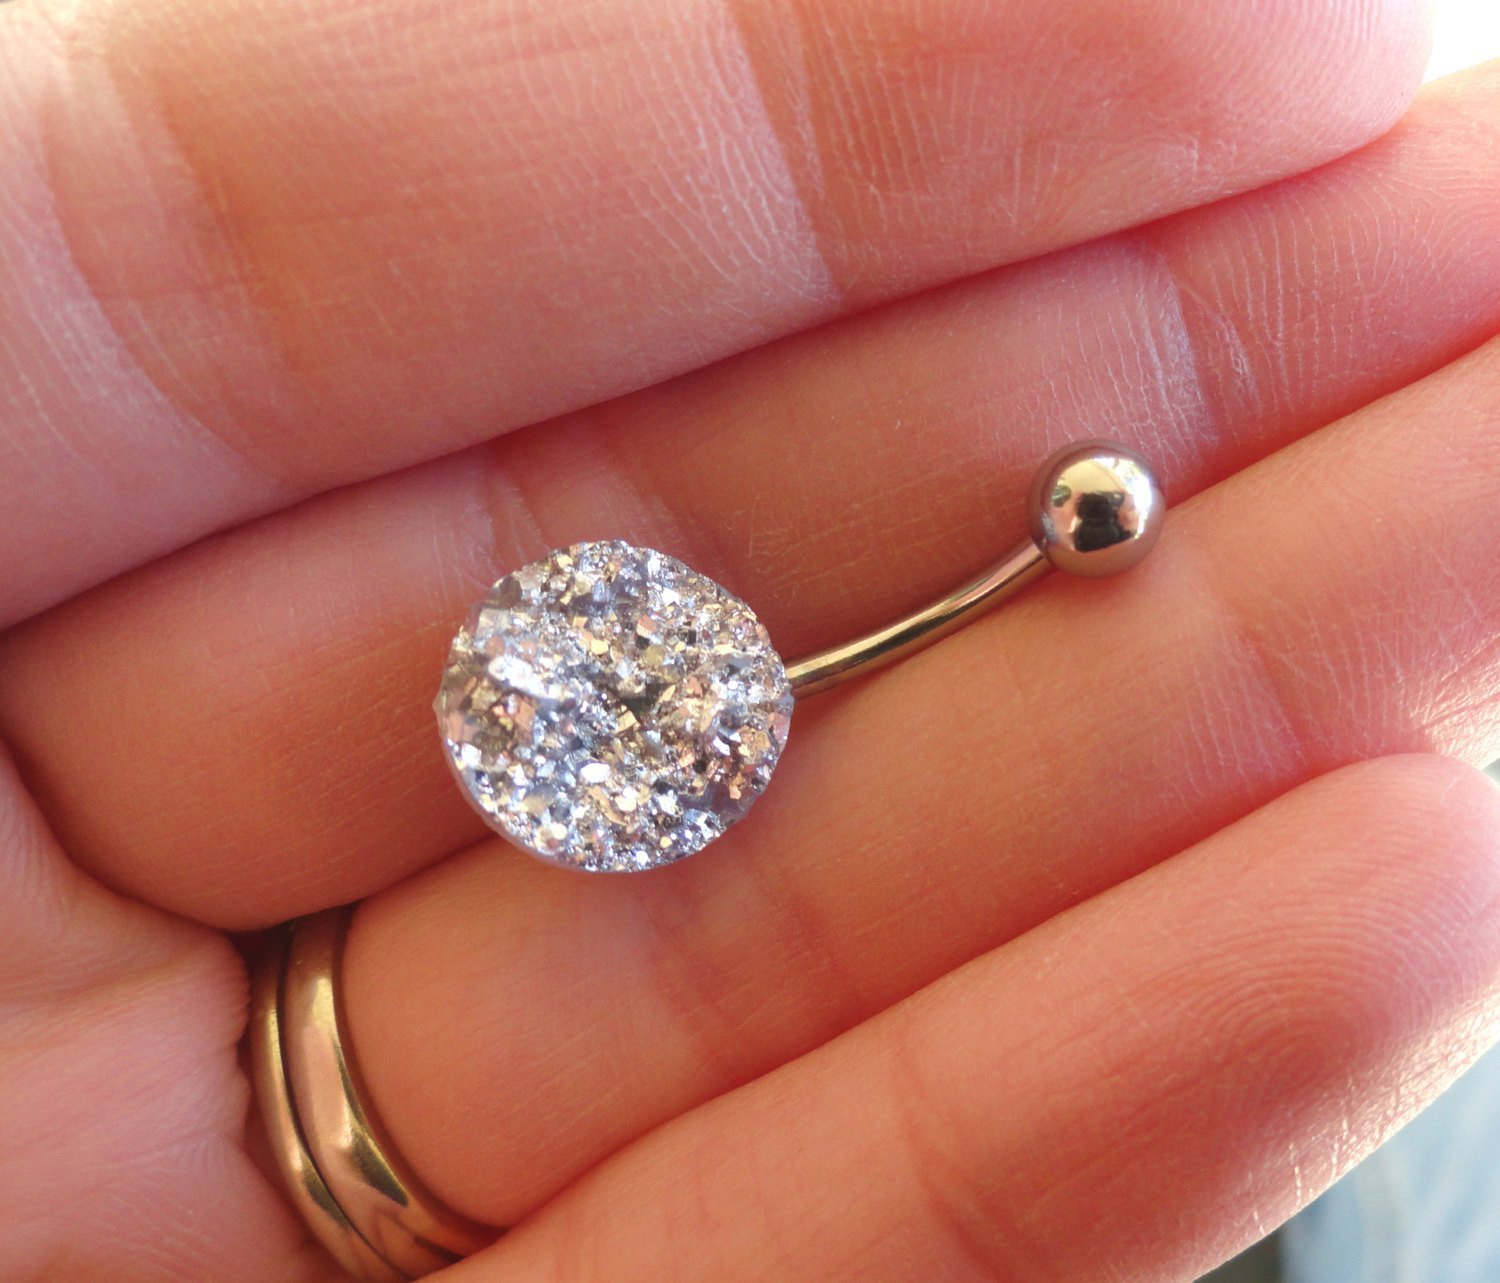 Image of Iridescent Silver Druzy Belly Button Jewelry Ring